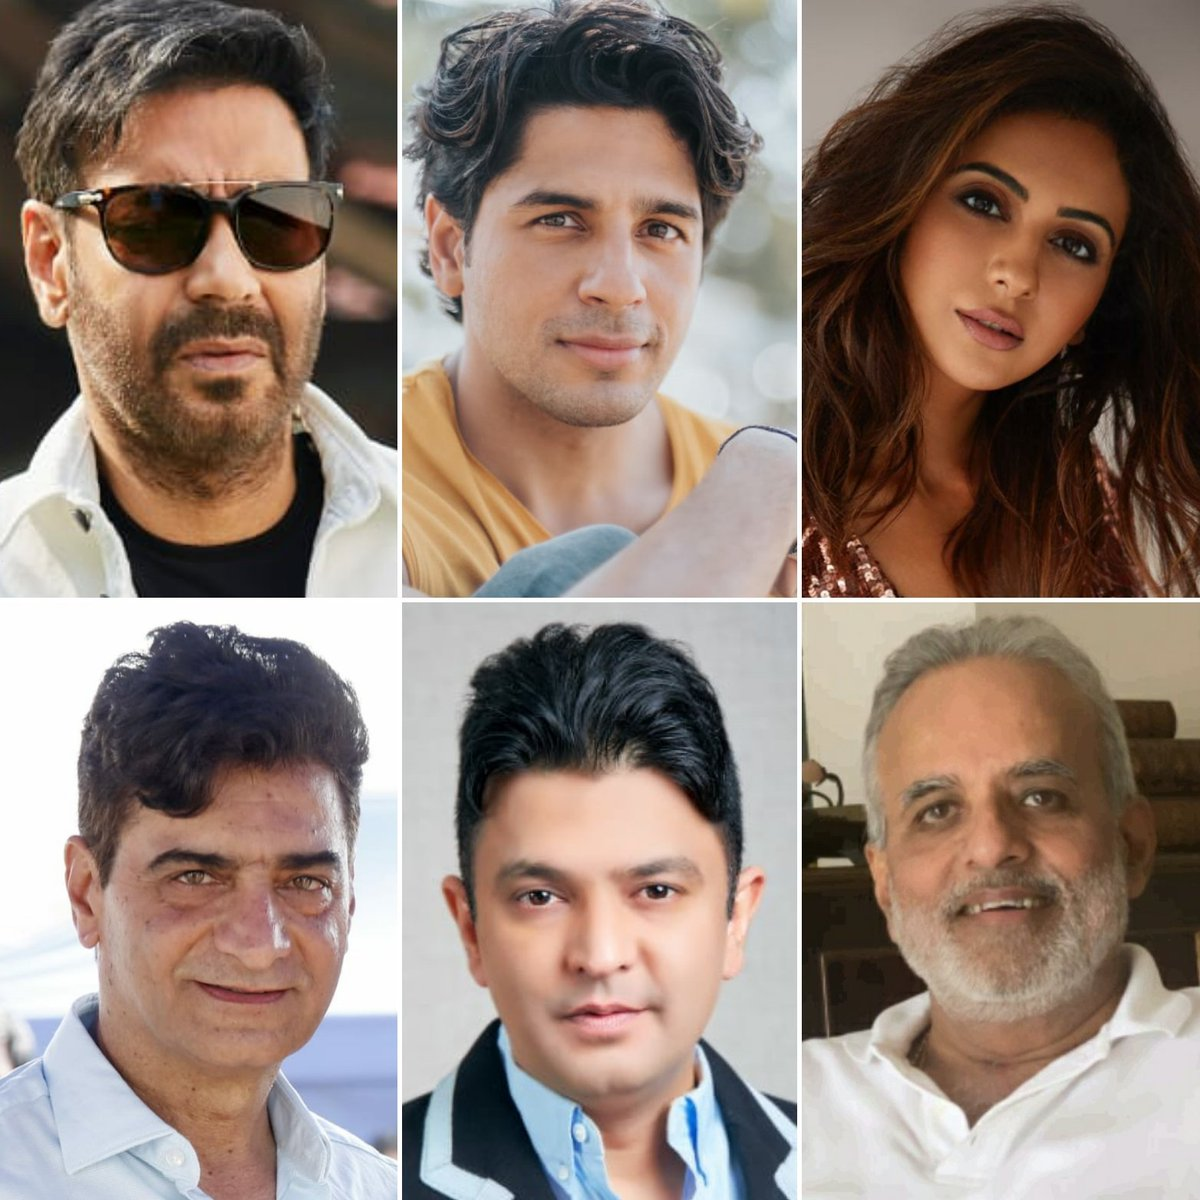 AJAY DEVGN - SIDHARTH MALHOTRA - RAKUL PREET IN 'THANK GOD'... #AjayDevgn, #SidharthMalhotra and #RakulPreet to star in slice of life comedy, with a message... Titled #ThankGod... Directed by Indra Kumar... Shoot starts 21 Jan 2021.